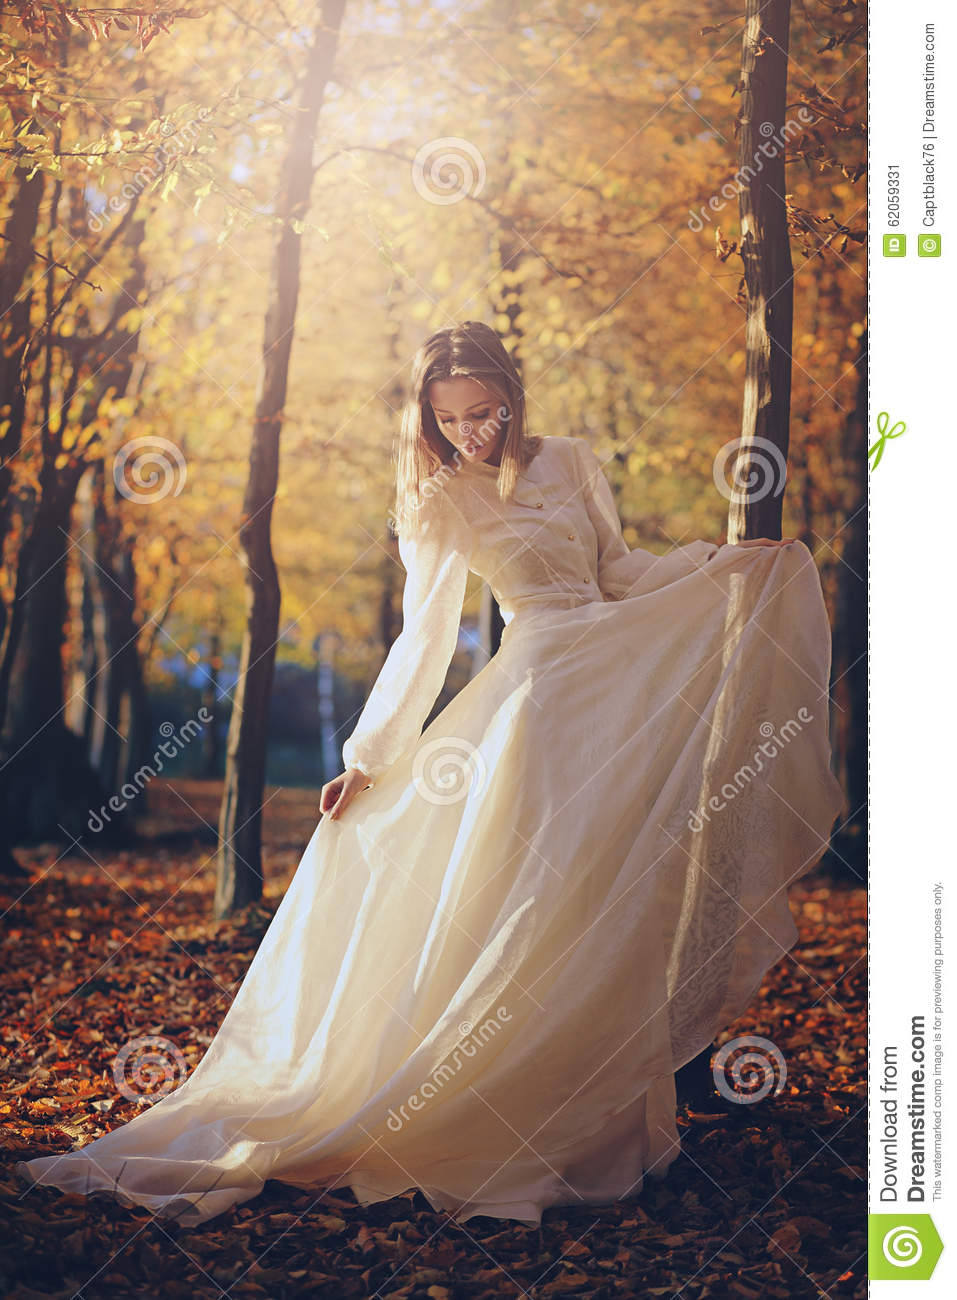 Woman With Victorian Dress In Autumn Woods Stock Photo